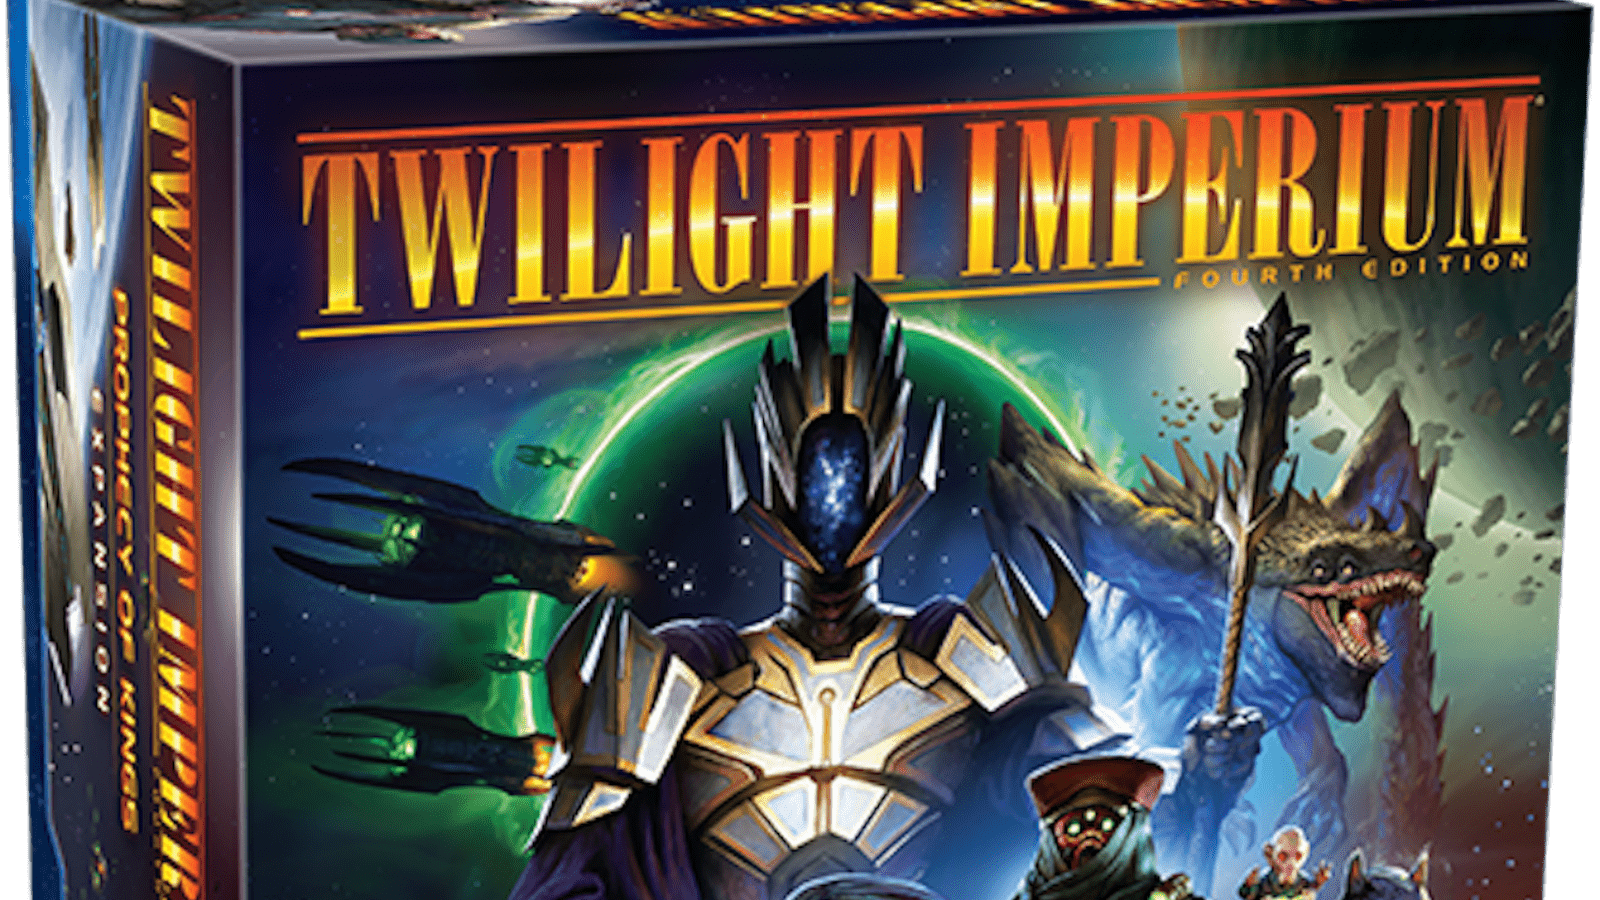 Twilight Imperium: Prophecy of Kings: not enough bang for your buck